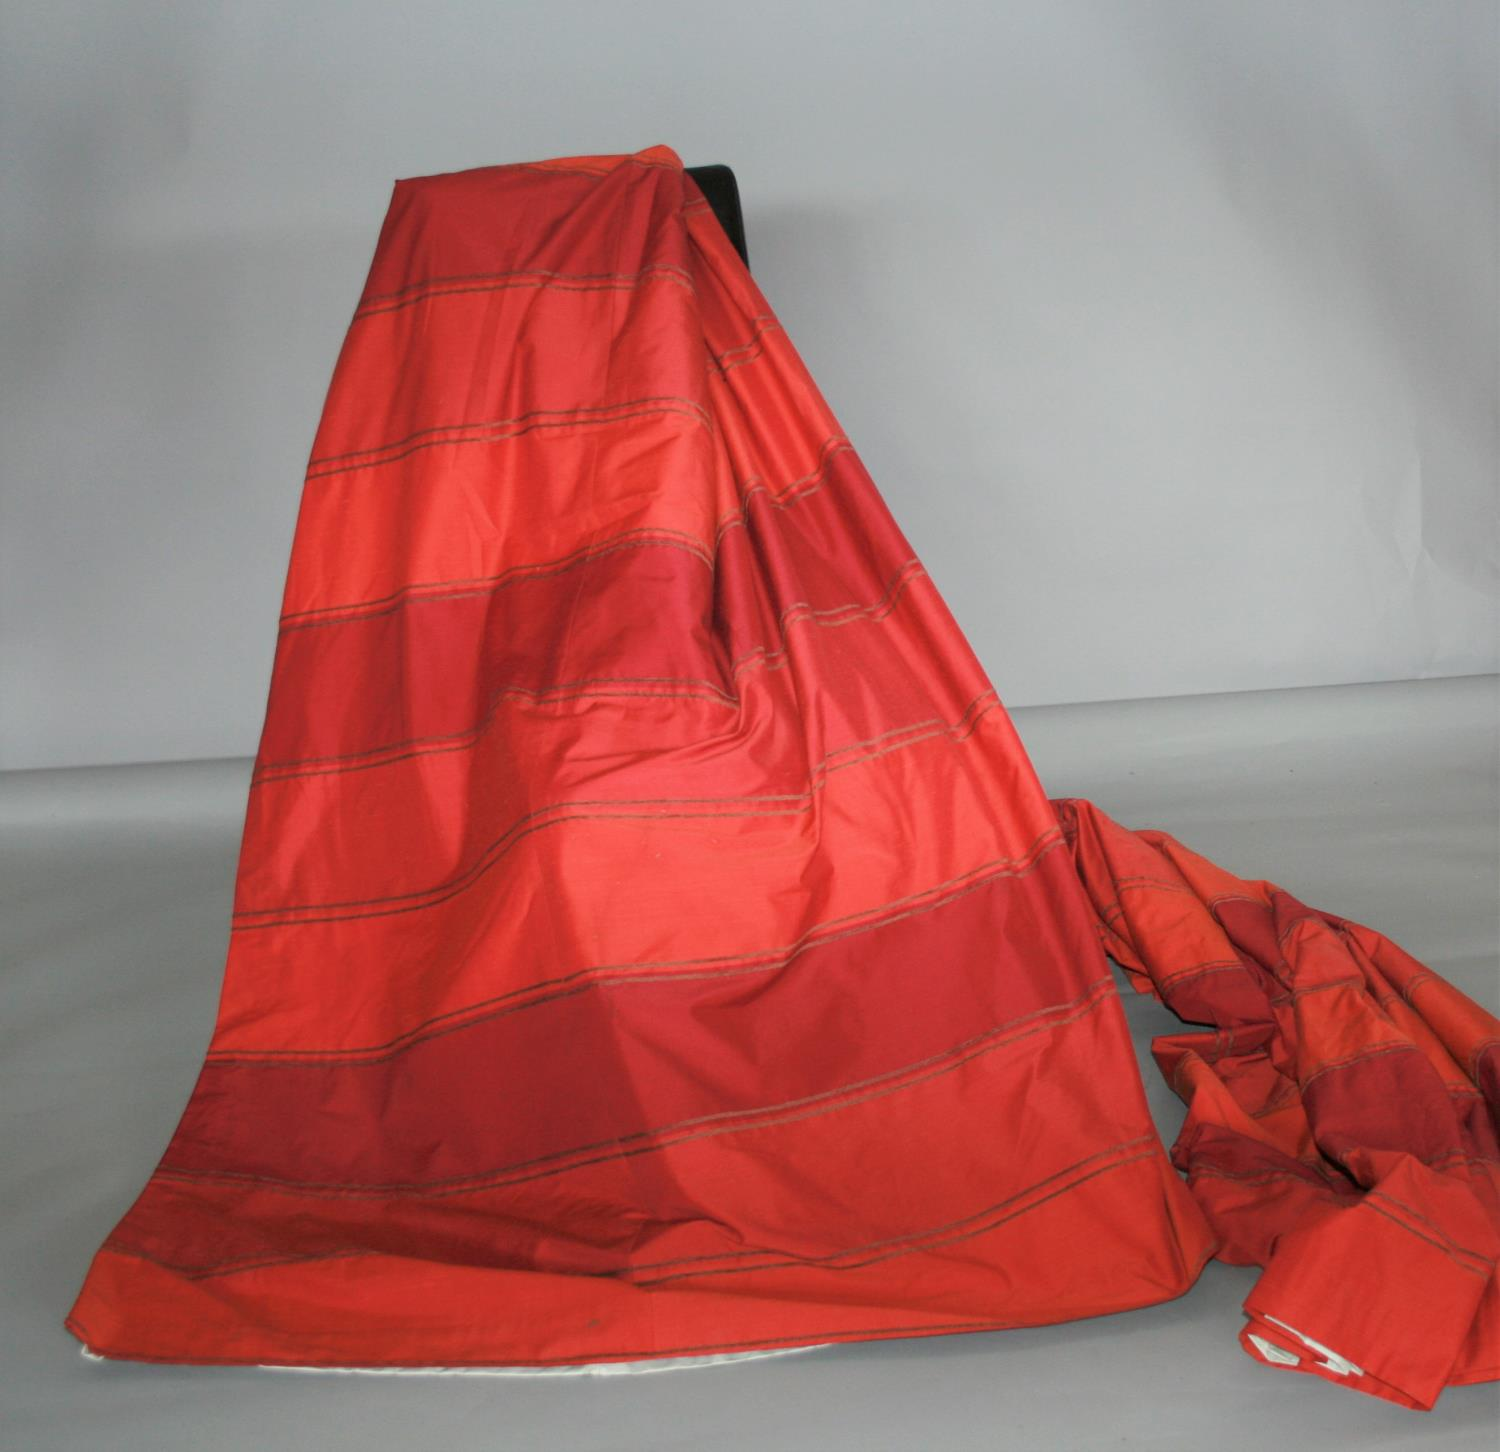 Two pairs of red curtain, striped pattern 110W x 210H approx. each.